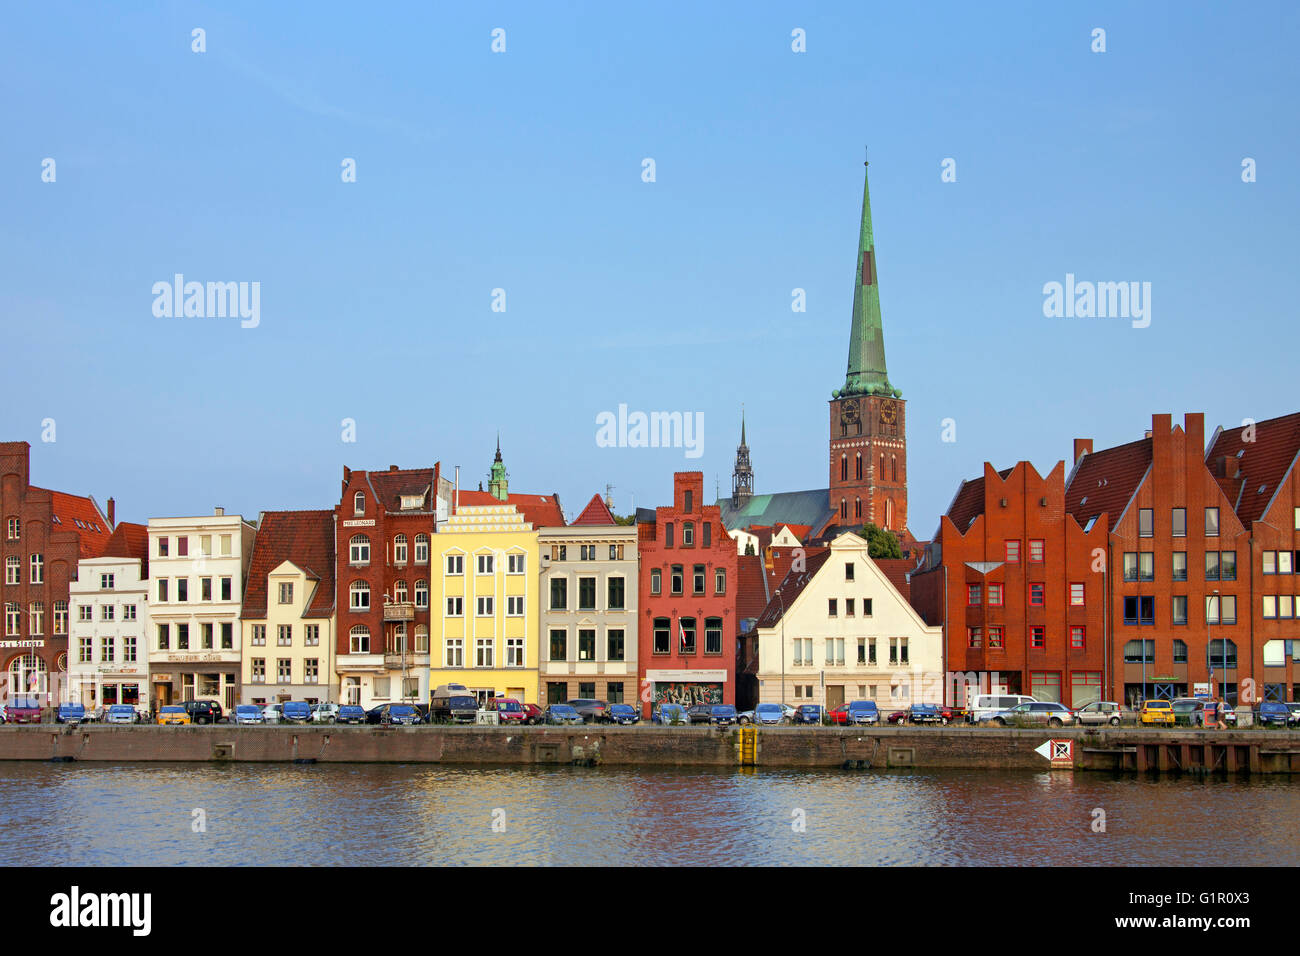 Historic houses and Jakobikirche / St. Jakobi church along the river Trave, Hanseatic town Lübeck, Schleswig - Stock Image